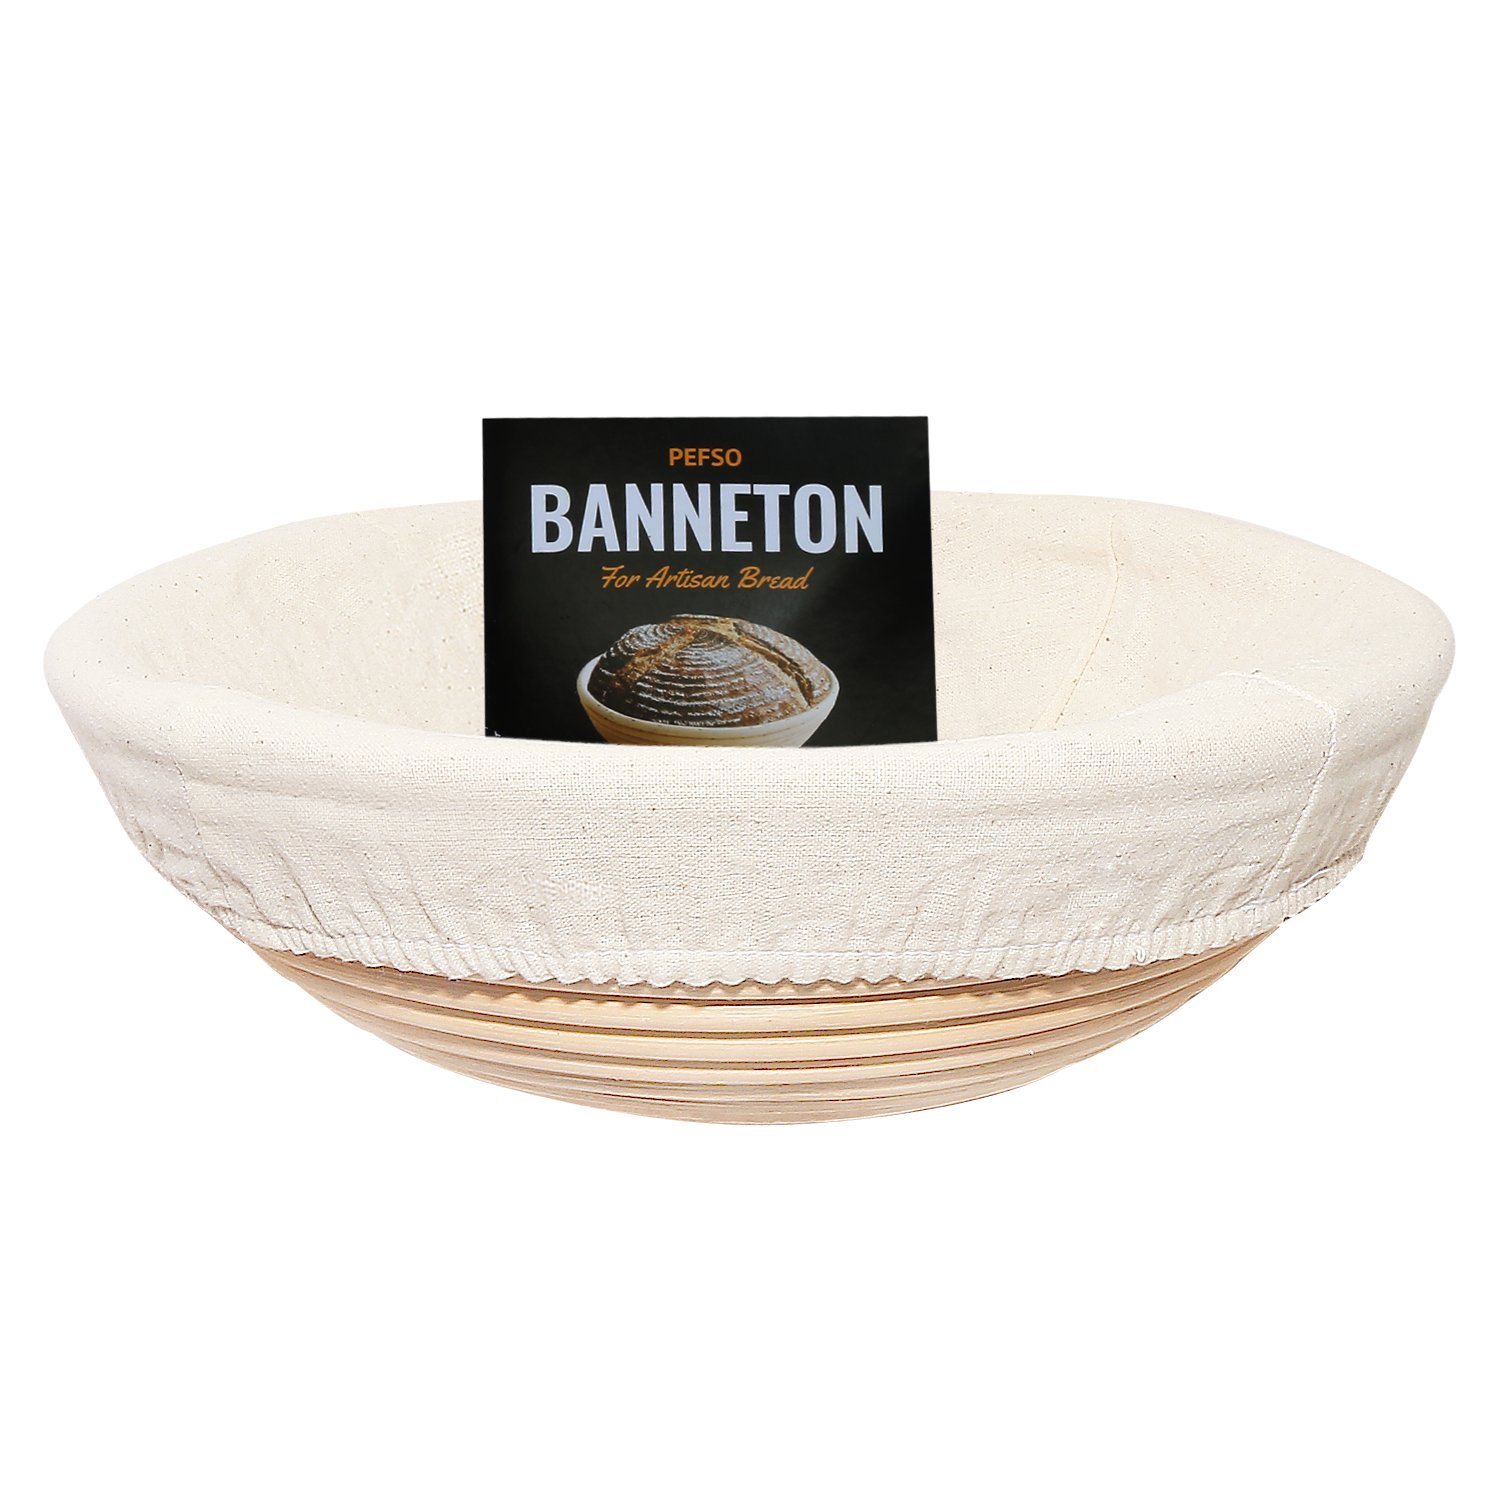 PEFSO 2pcs 9 Inch Round Banneton Rattan Bread Proofing Basket Brotform with Linen Liner clothfor Artisan Sourdough Bread 111104